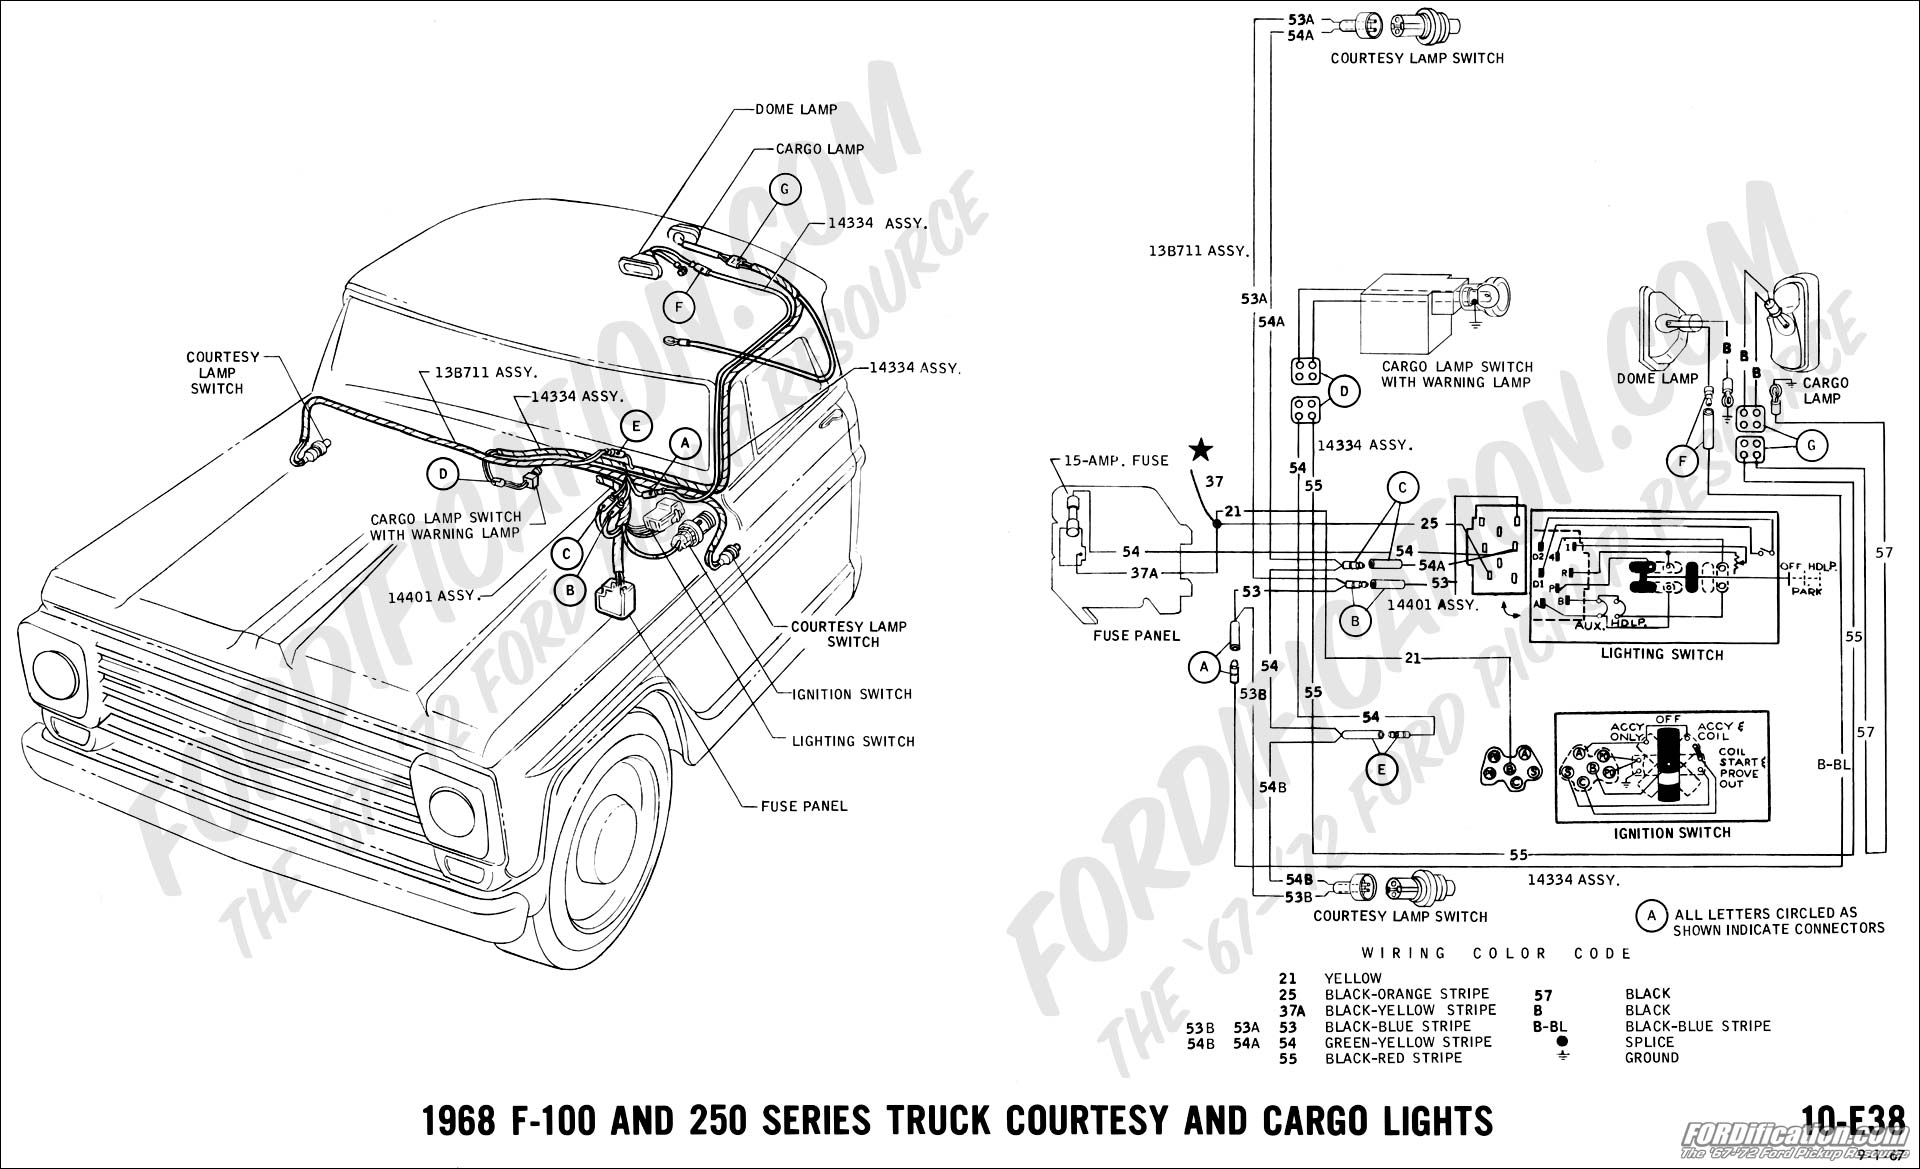 ford truck technical drawings and schematics section h 1979 ford f-150 wiring diagram 71 ford truck wiring diagram #13